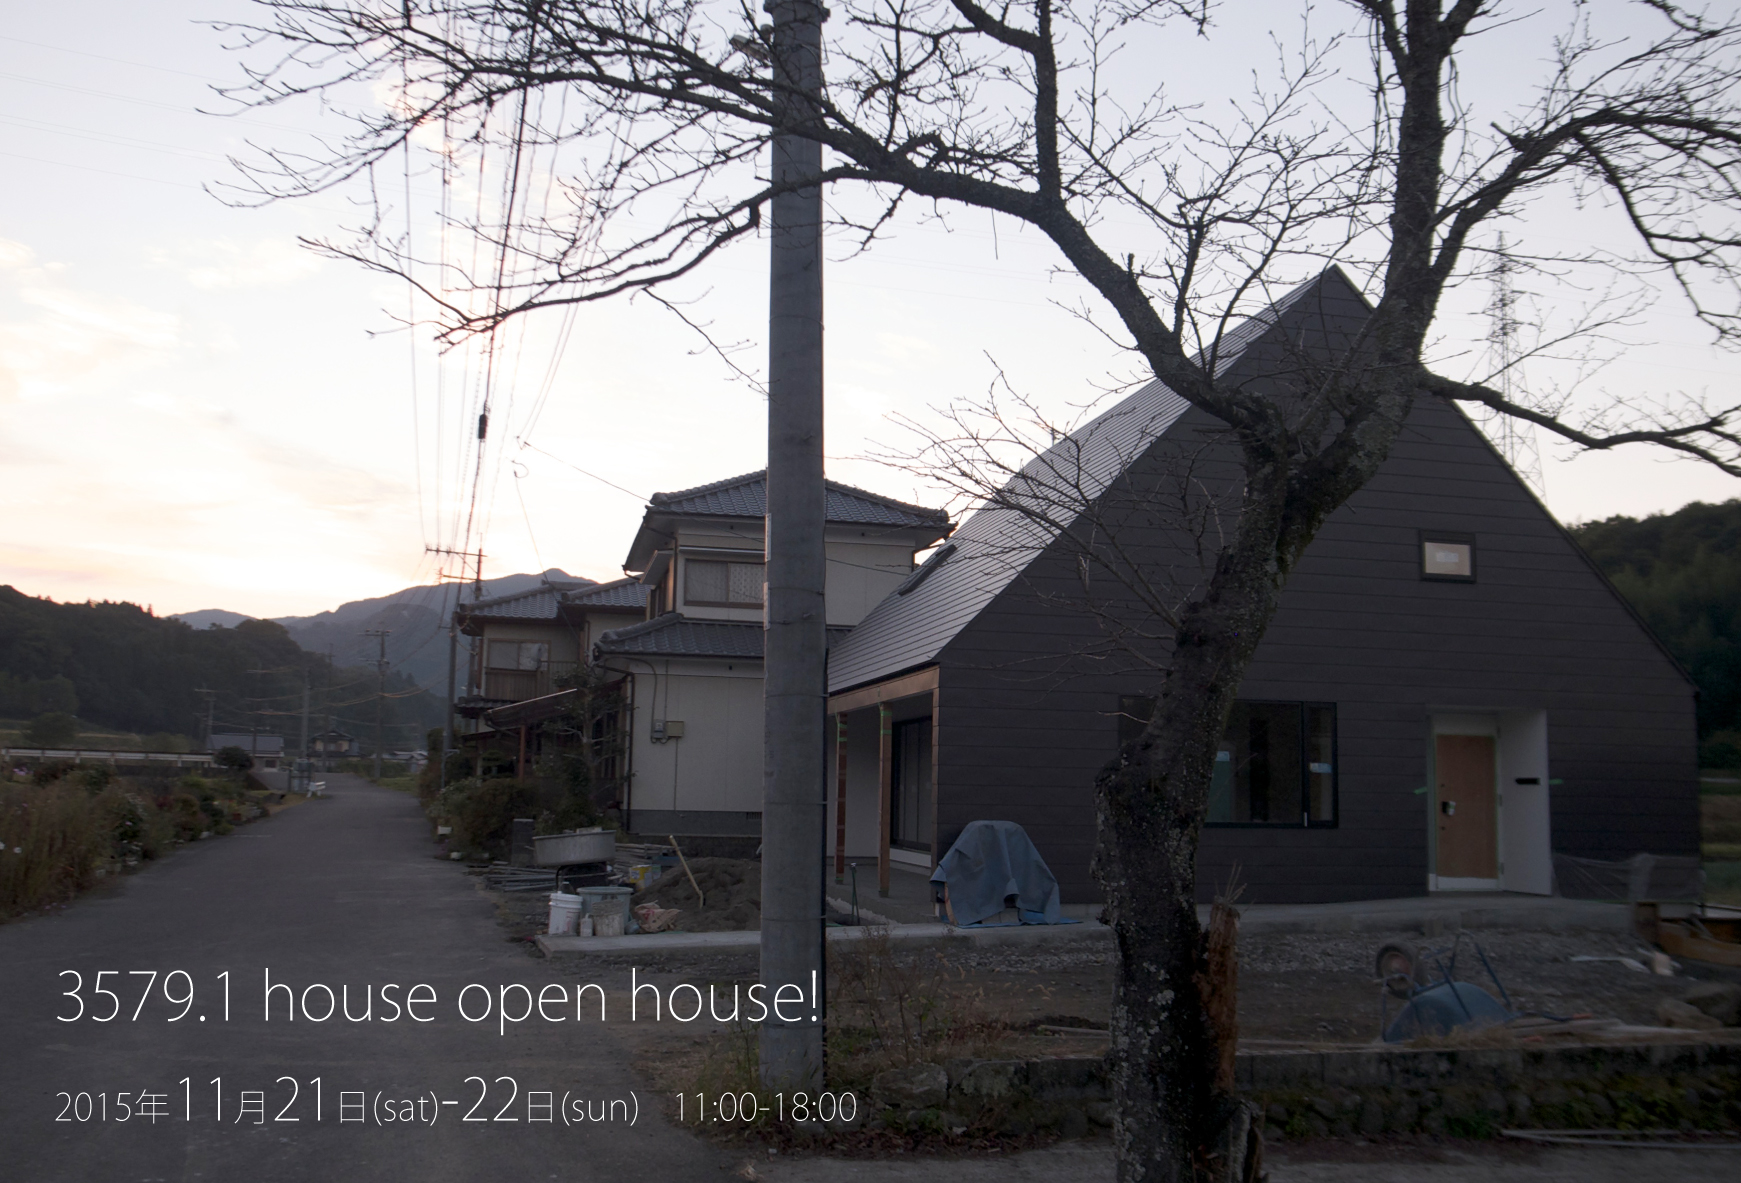 3579.1house open house